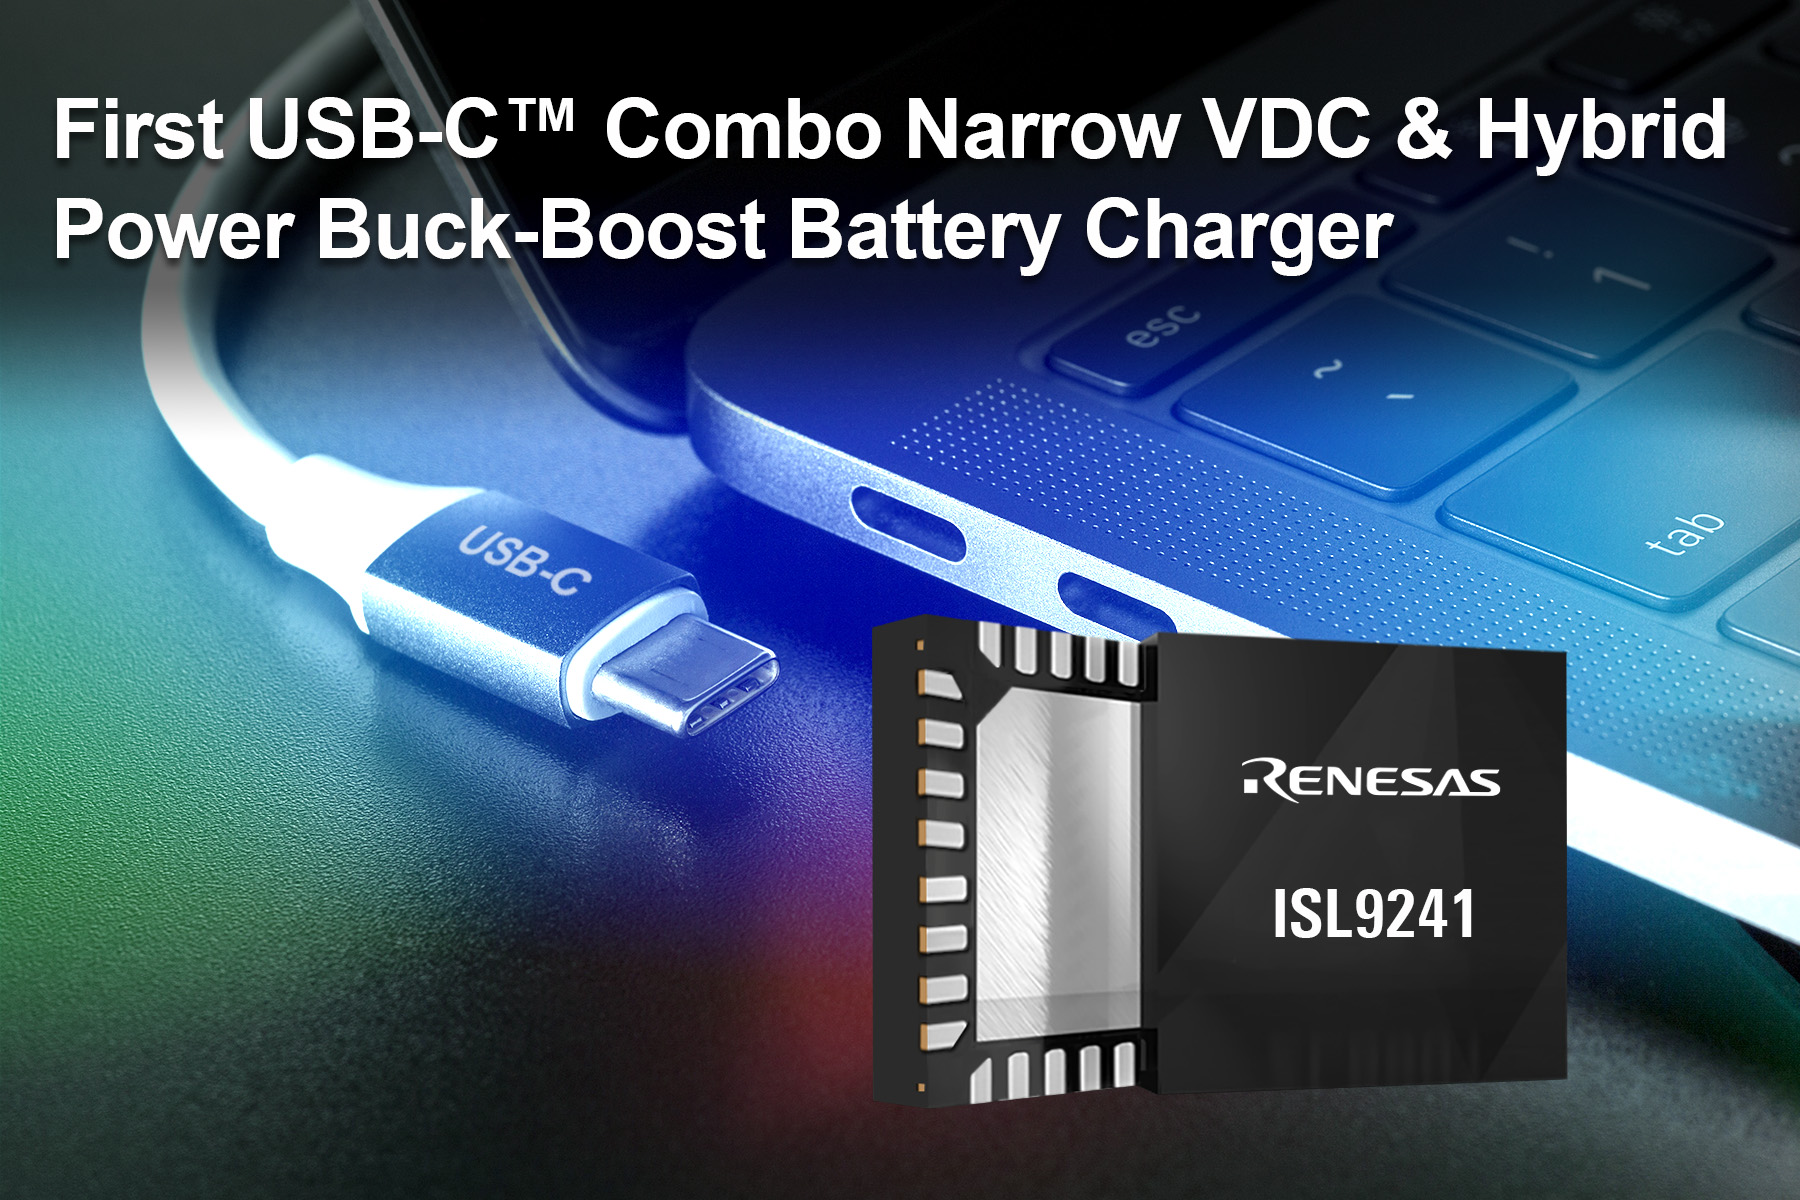 USB-C buck-boost charger supports NVDC and HPBB